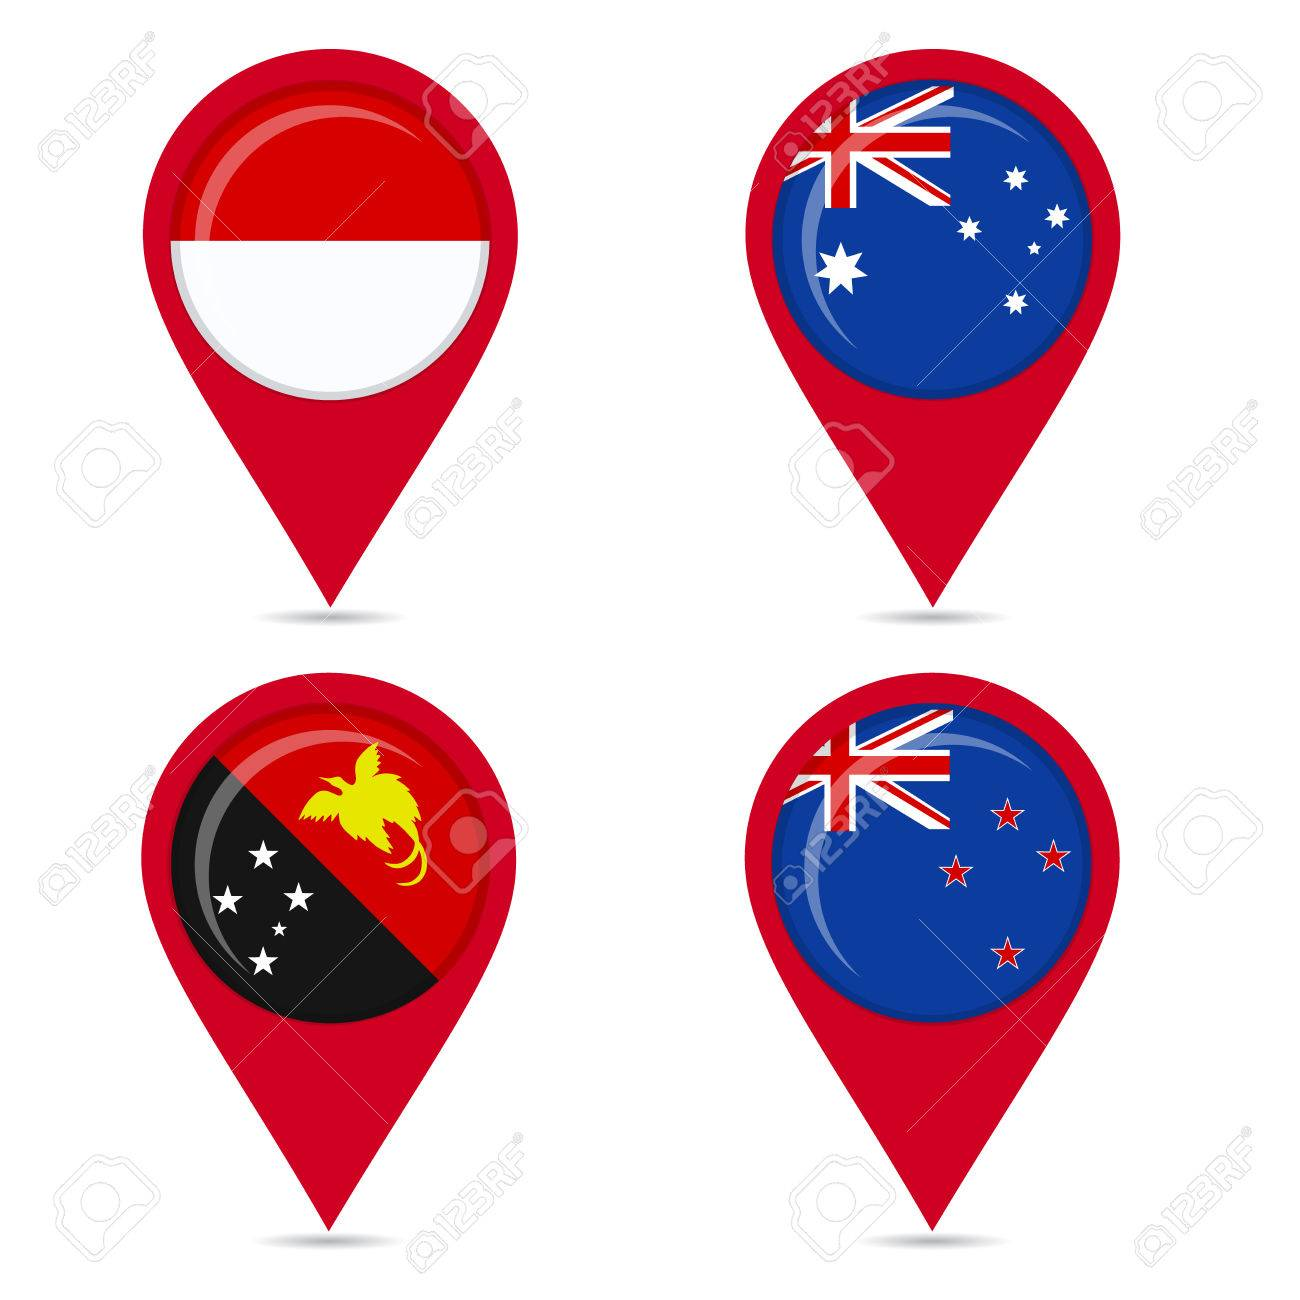 Map pin icons of national flags: Papua New Guinea, Australia,